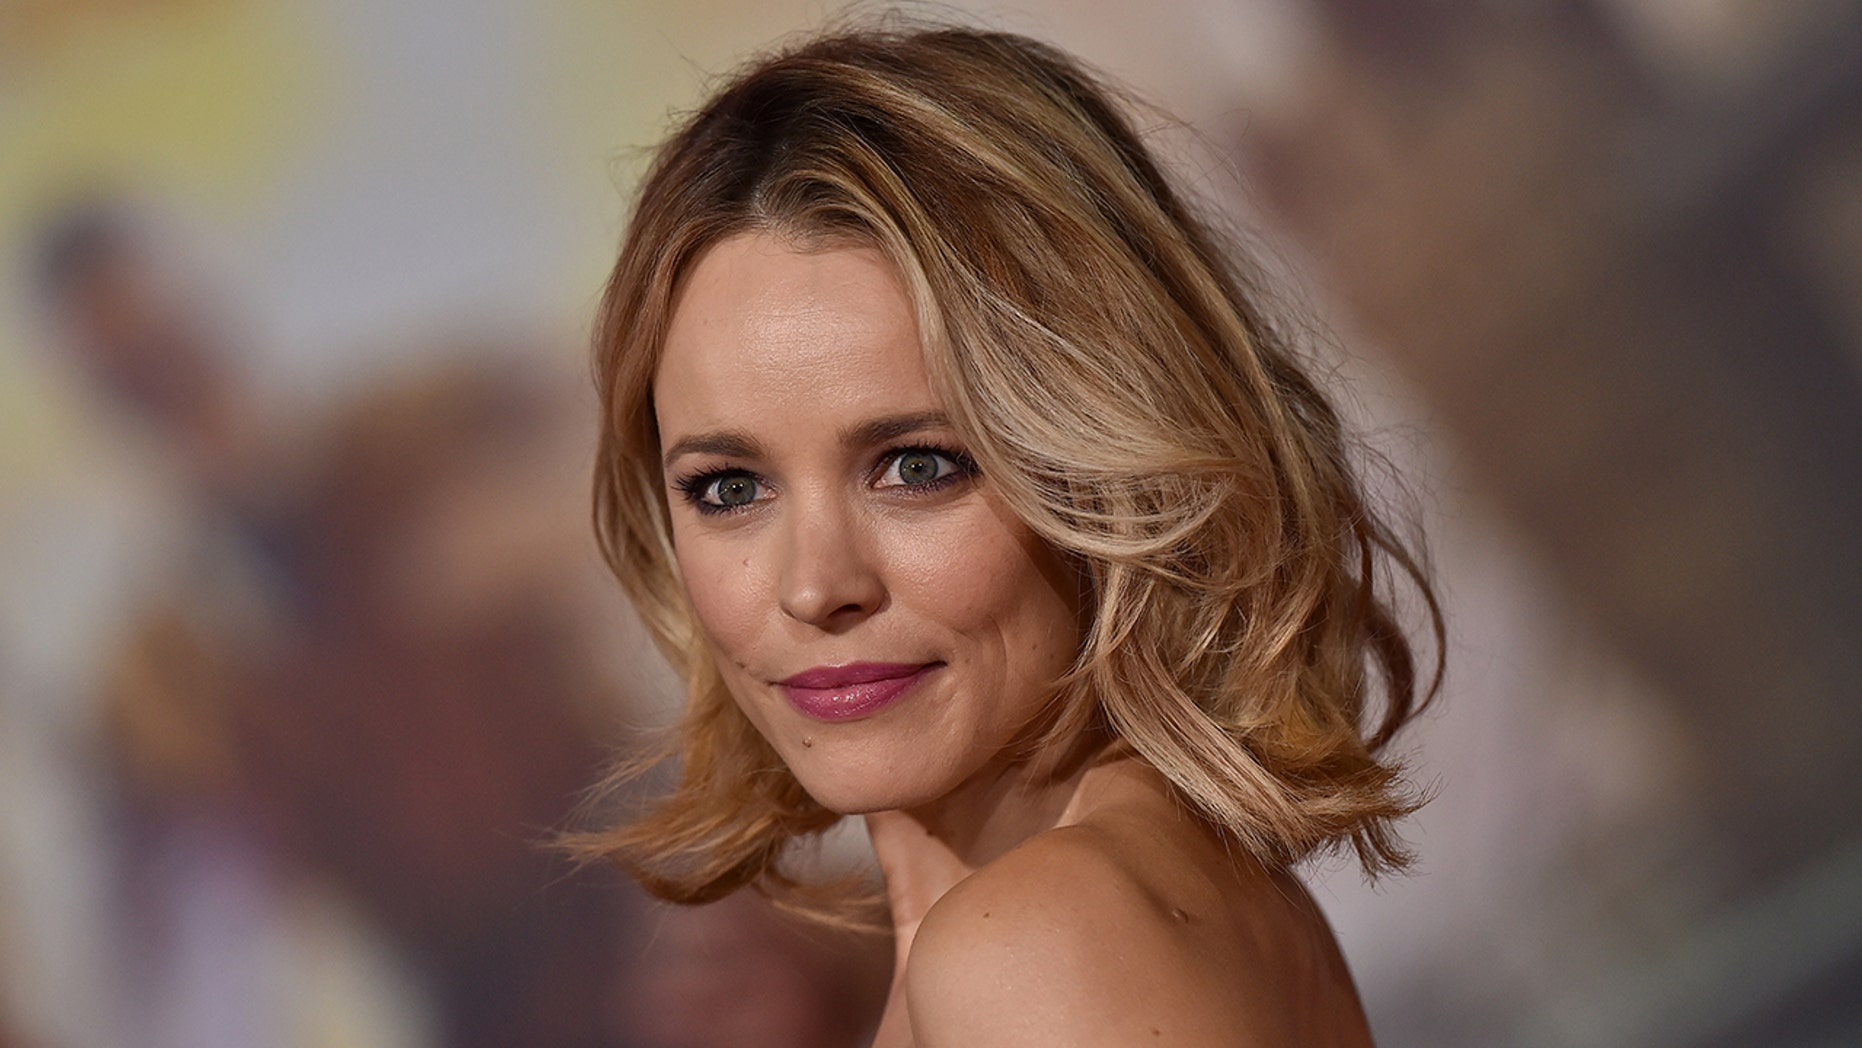 Rachel McAdams poses in Versace and a breast pump